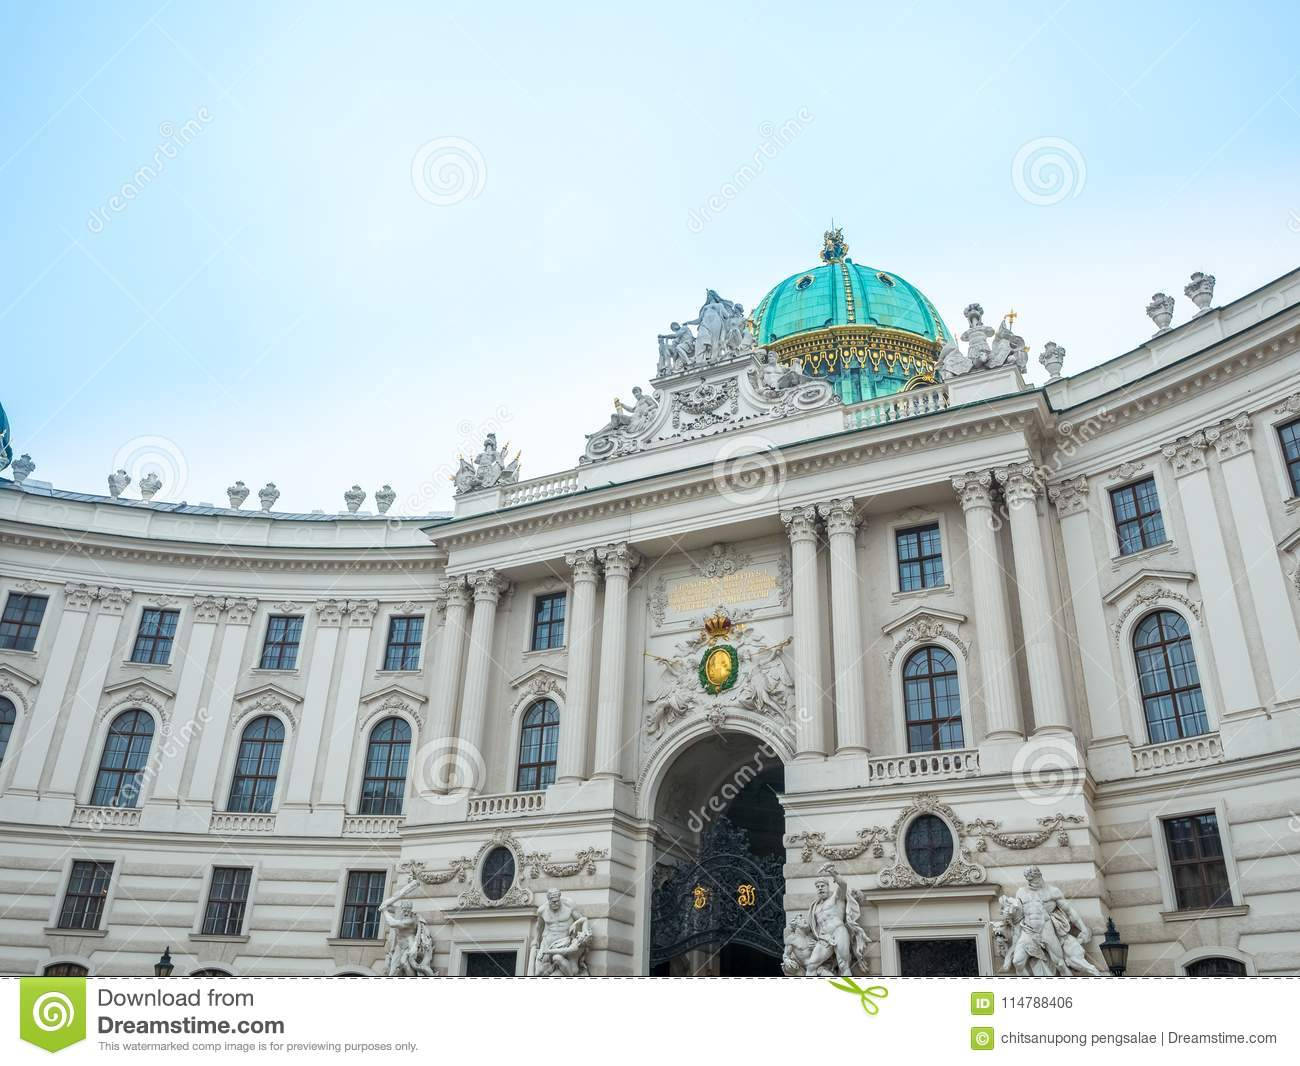 The Hofburg is the imperial palace in Heldenplatz square in the centre of Vienna, Austria. Almost famous destination tourist. The